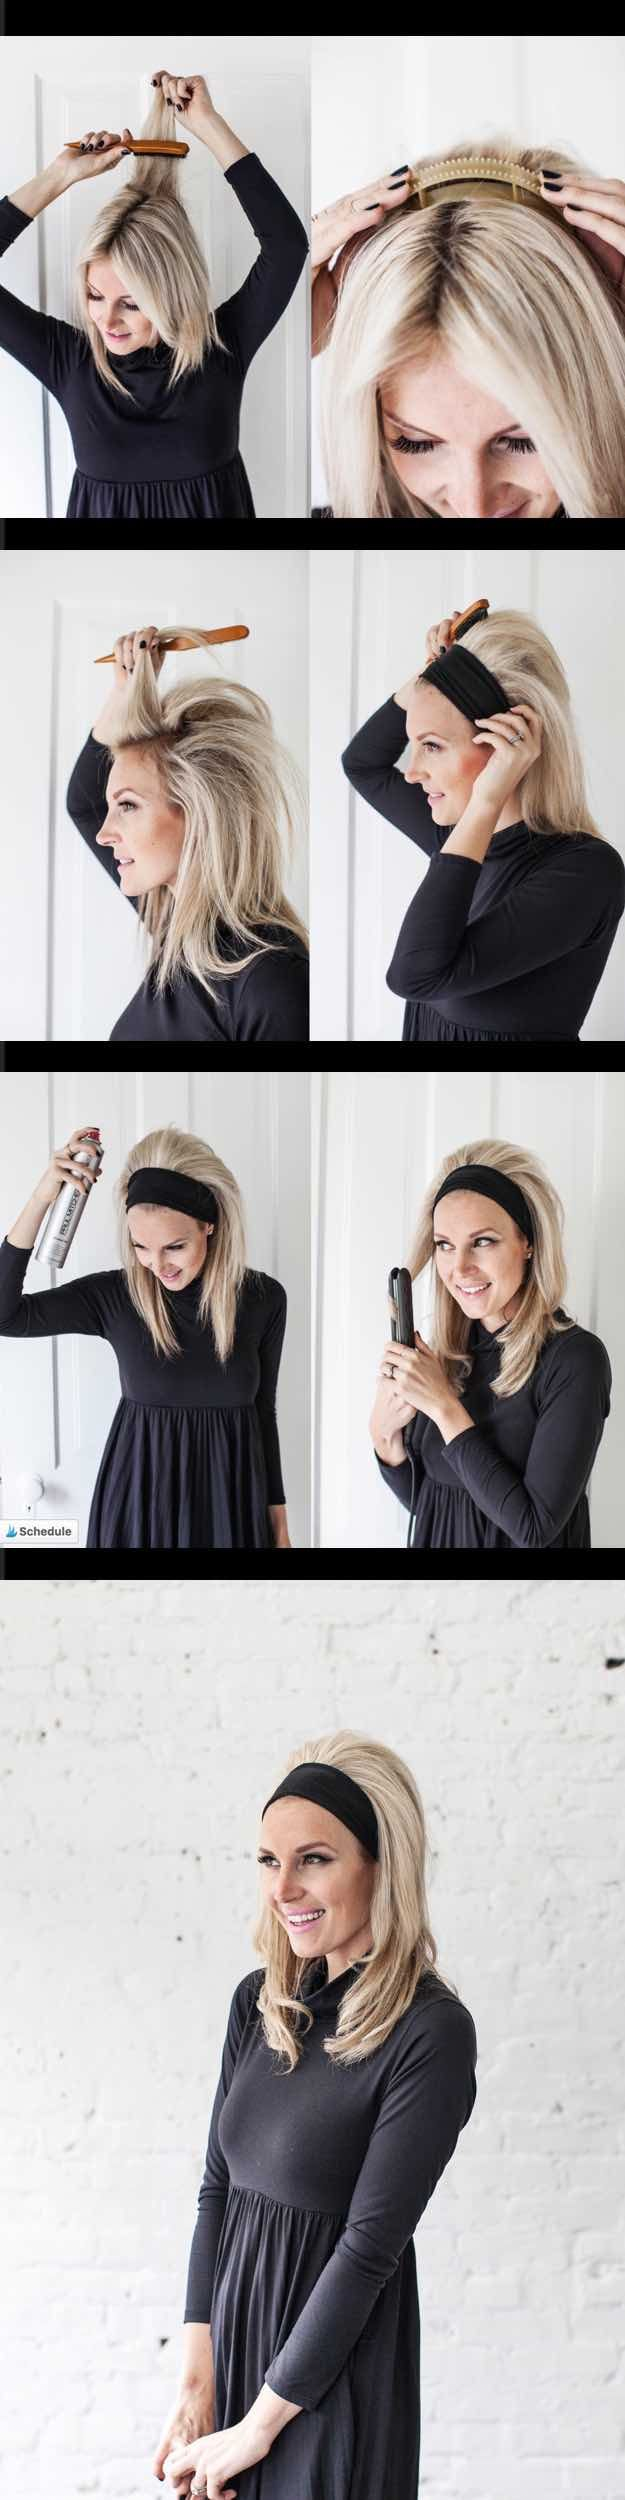 33 Fast and Simple Hairstyles for Straight Hair